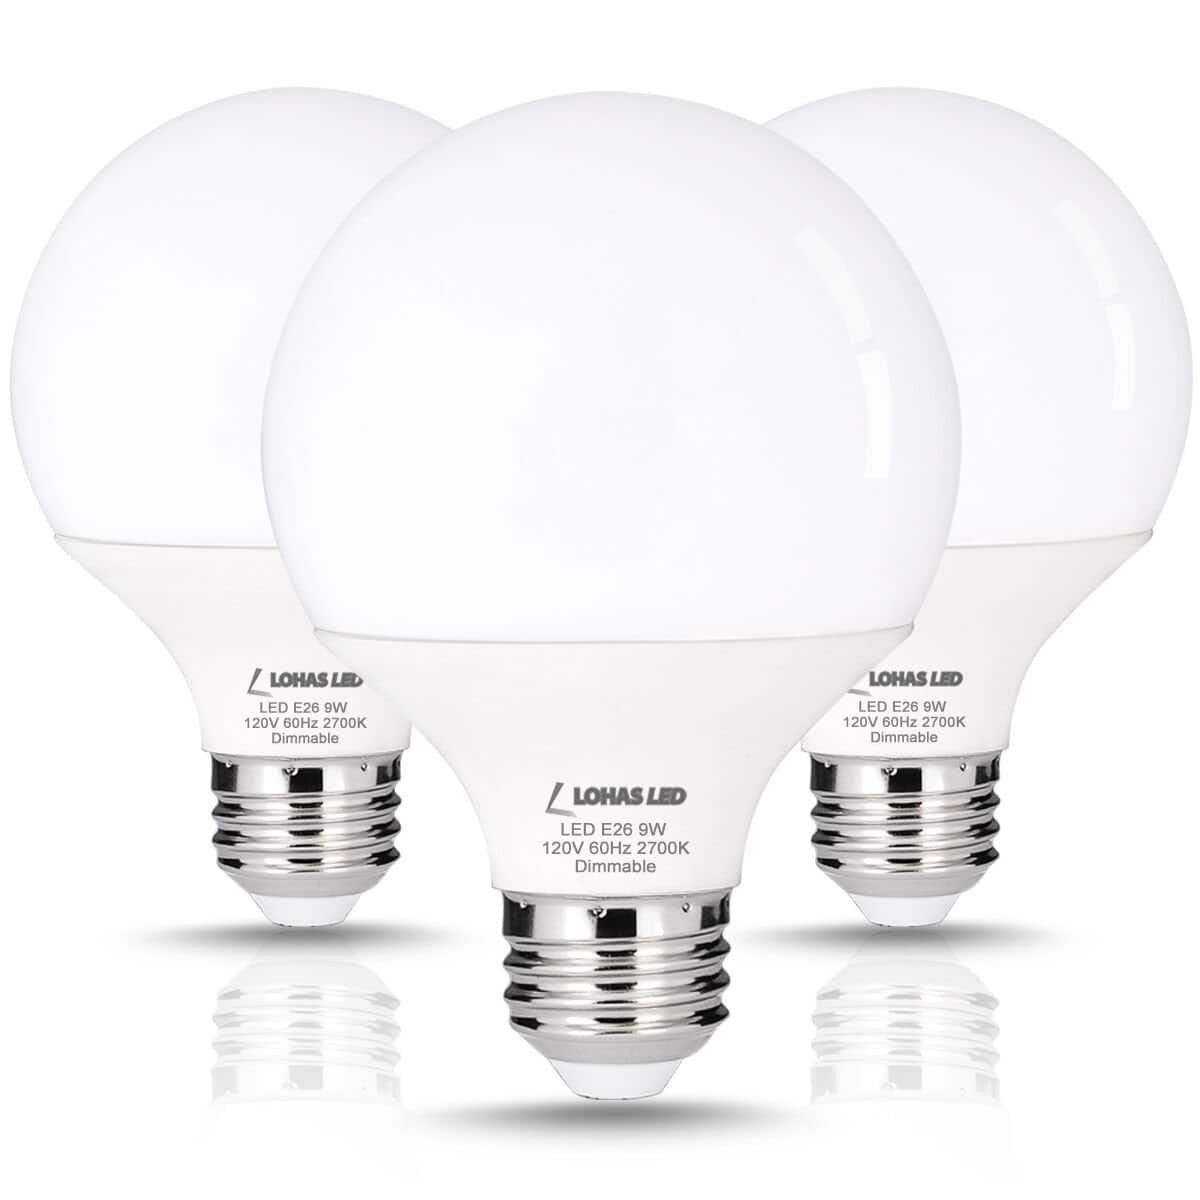 11.99 $ ONLY! 3PACK Globe Light Bulb G25 9W Warm white 810lm E26  @amazon $11.99